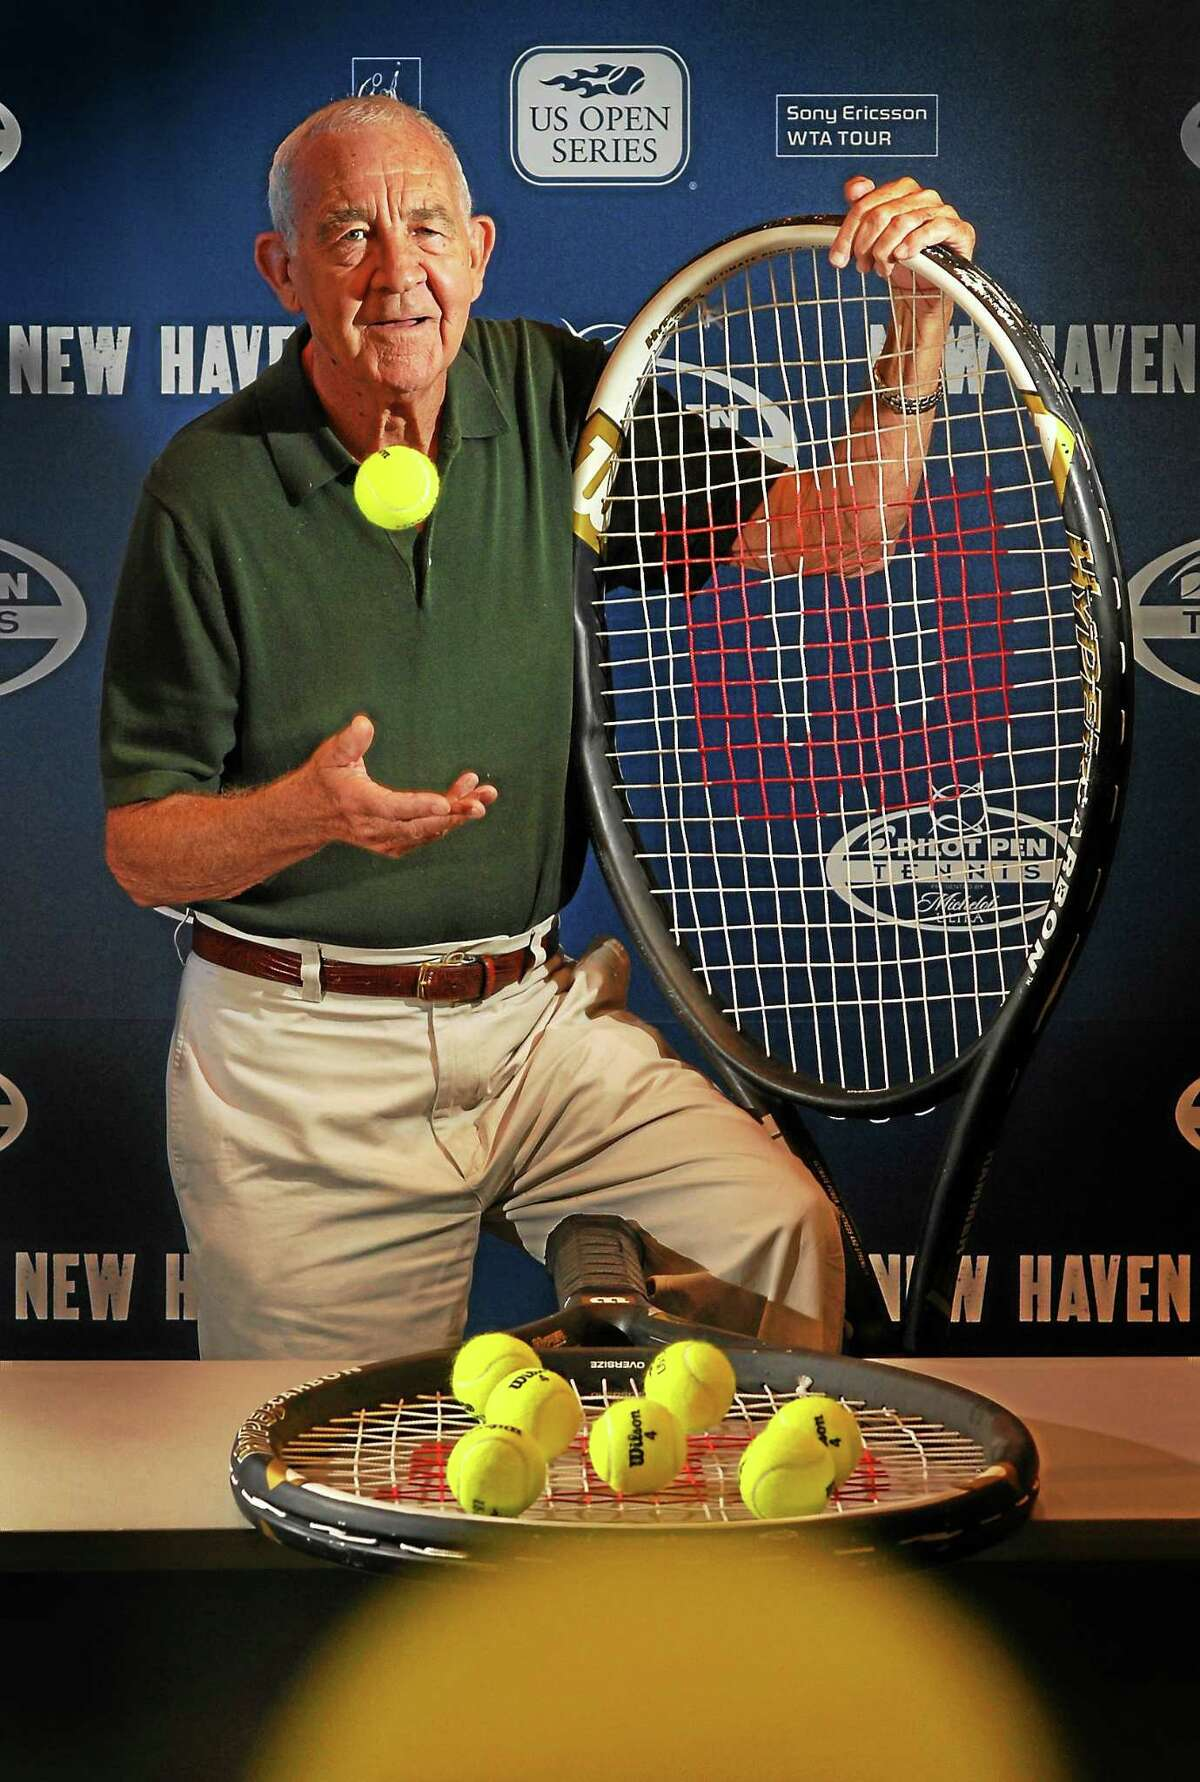 Mike Davies, the former CEO of the Connecticut Open, died on Tuesday at 79.